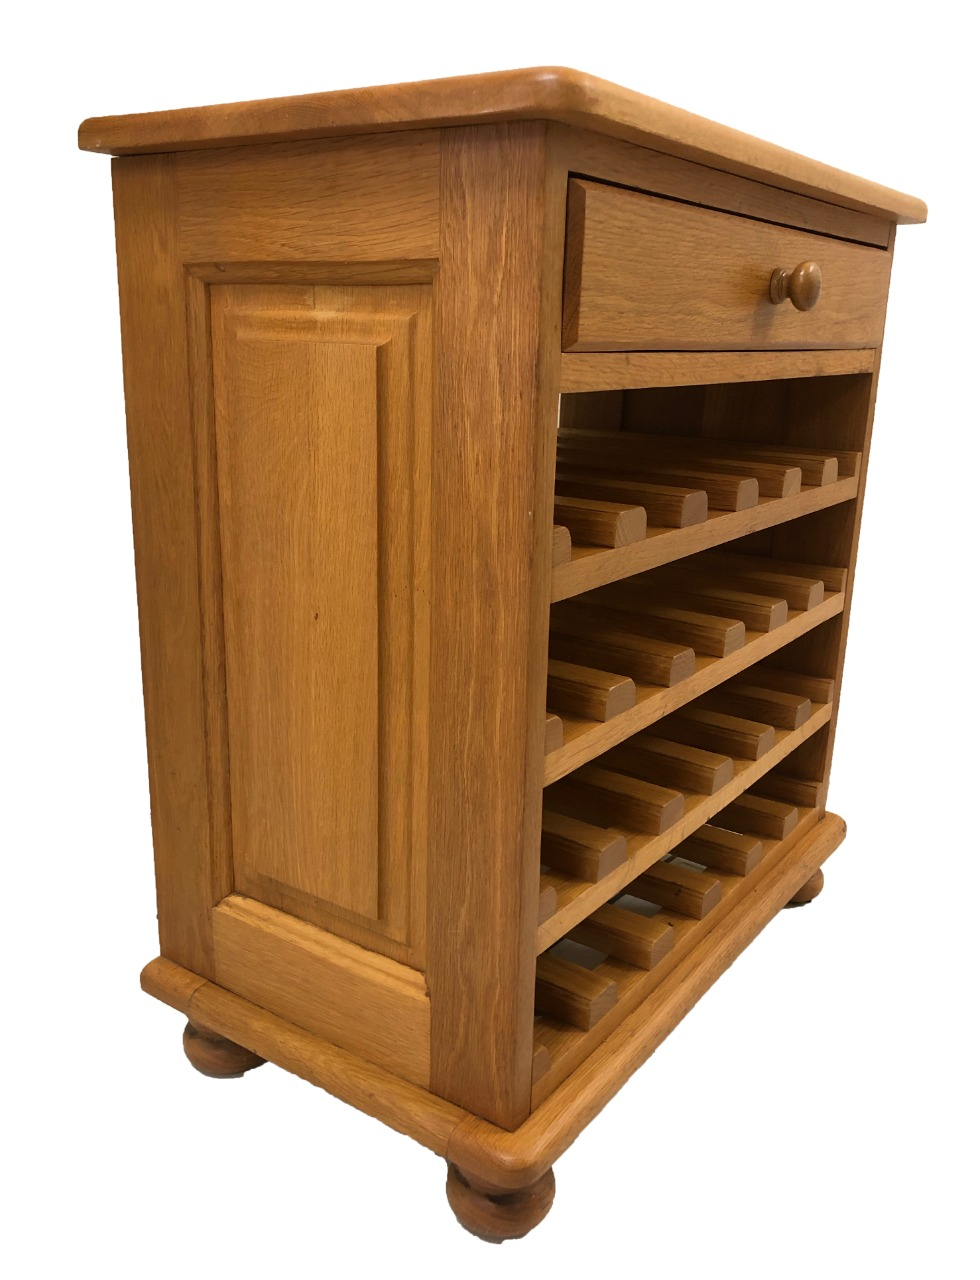 Wooden 24 Place Wine Rack for Sale!